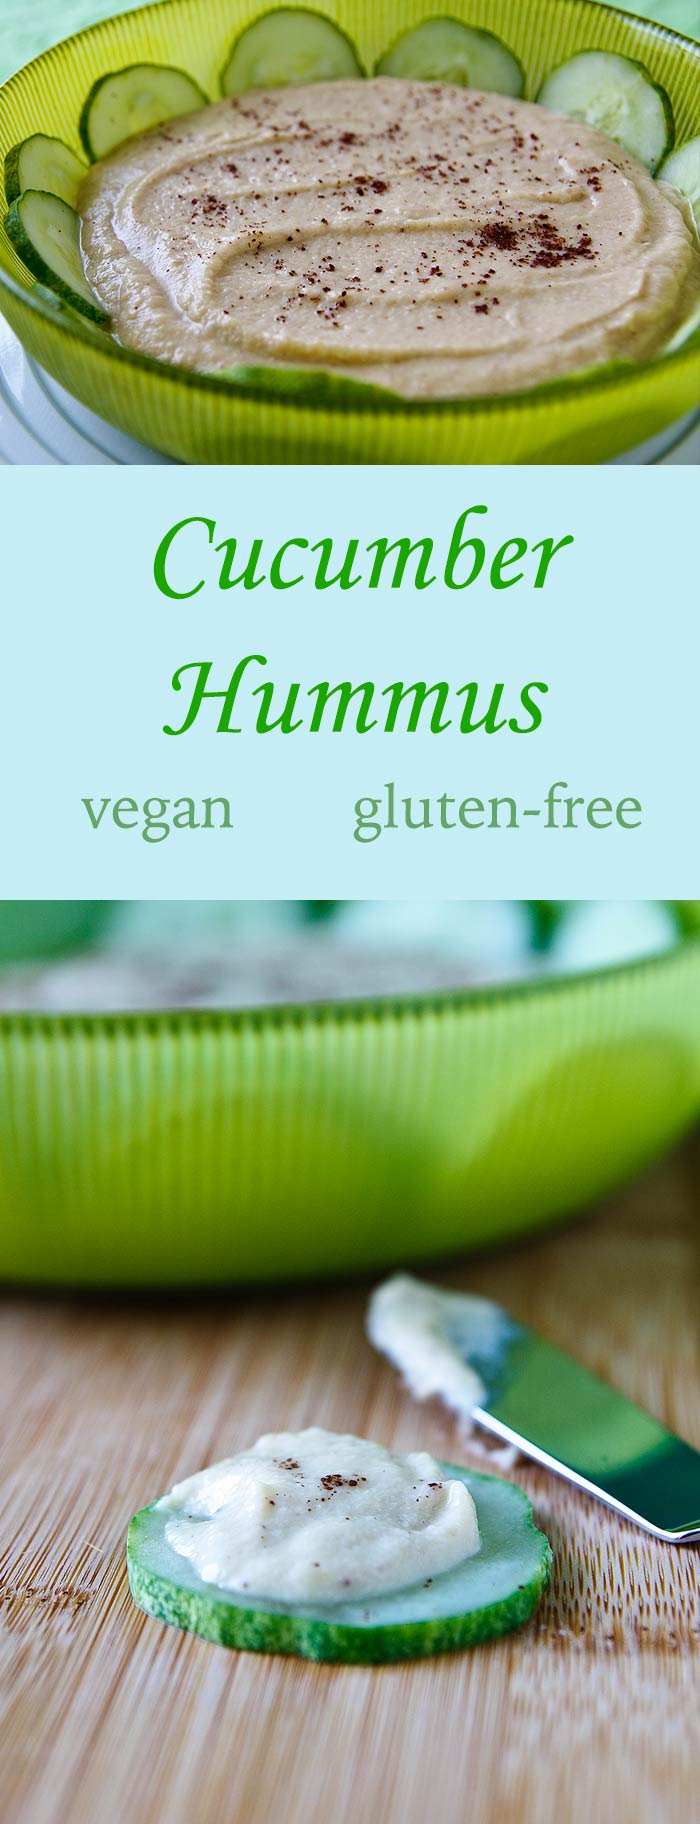 In this simple recipe, chopped cucumber takes the place of some of the liquid normally used to make hummus and makes the dip lighter and a little fluffier.